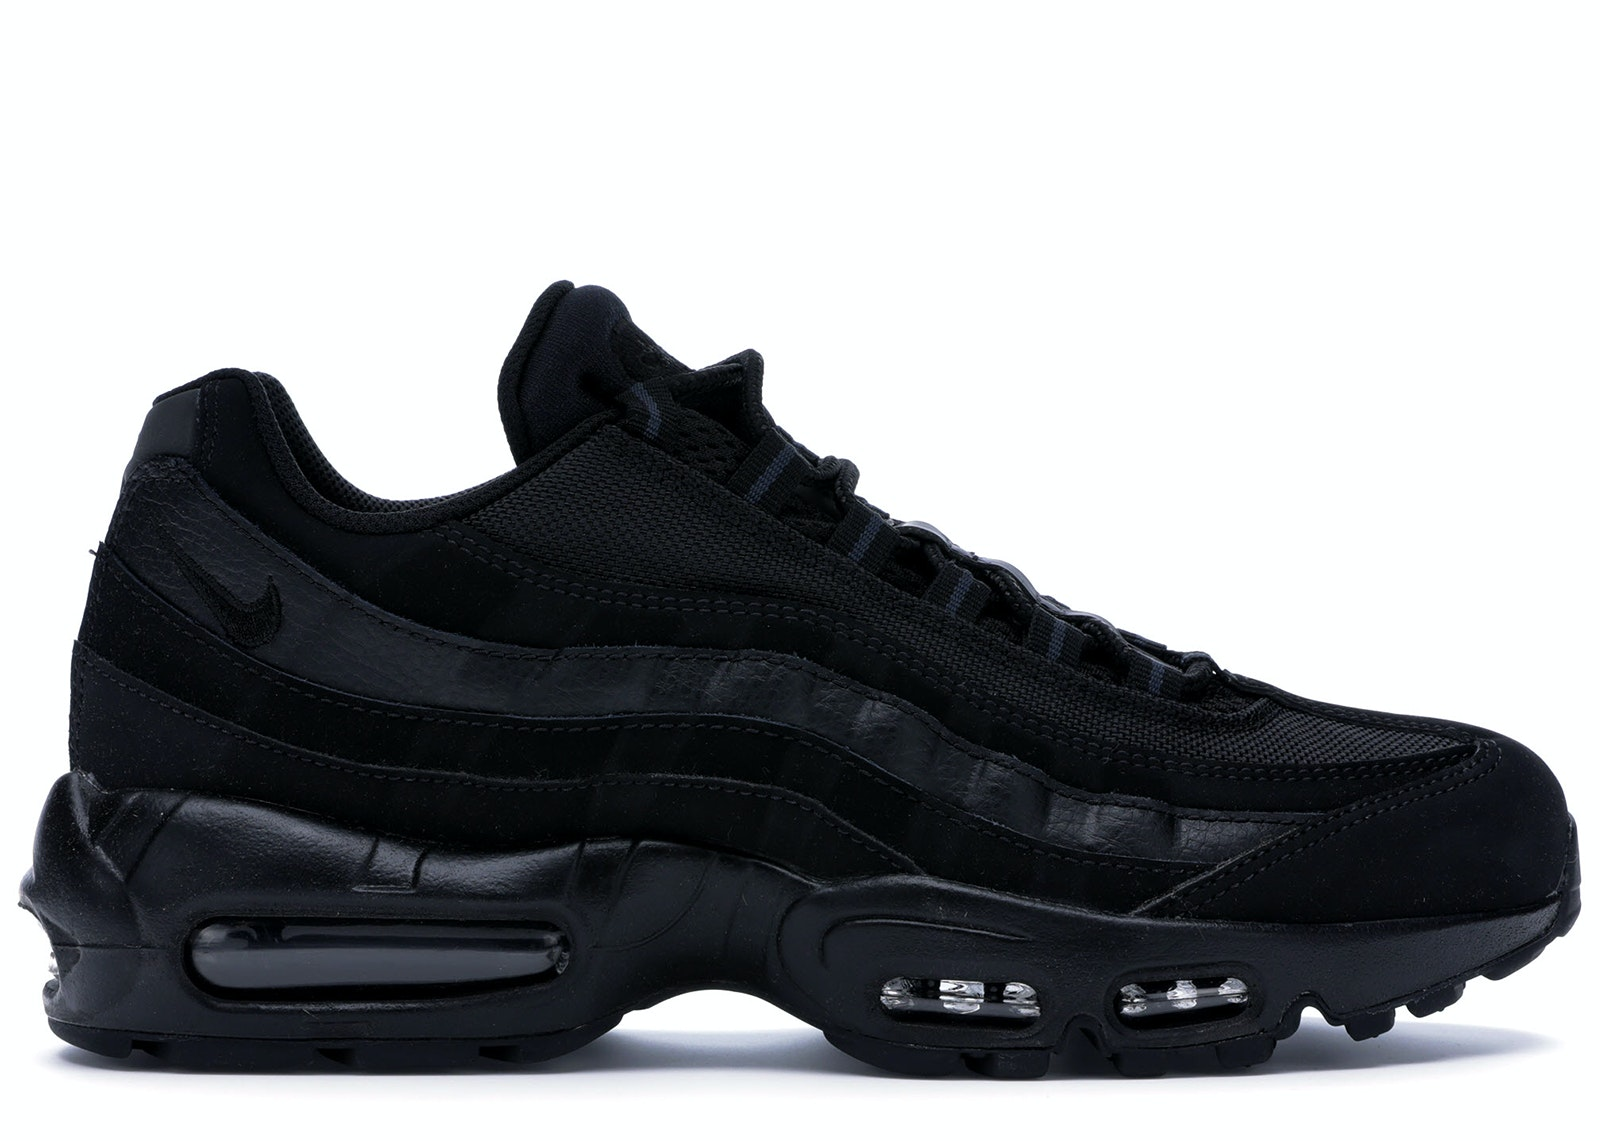 Buy Nike Air Max 95 Shoes \u0026 Deadstock Sneakers